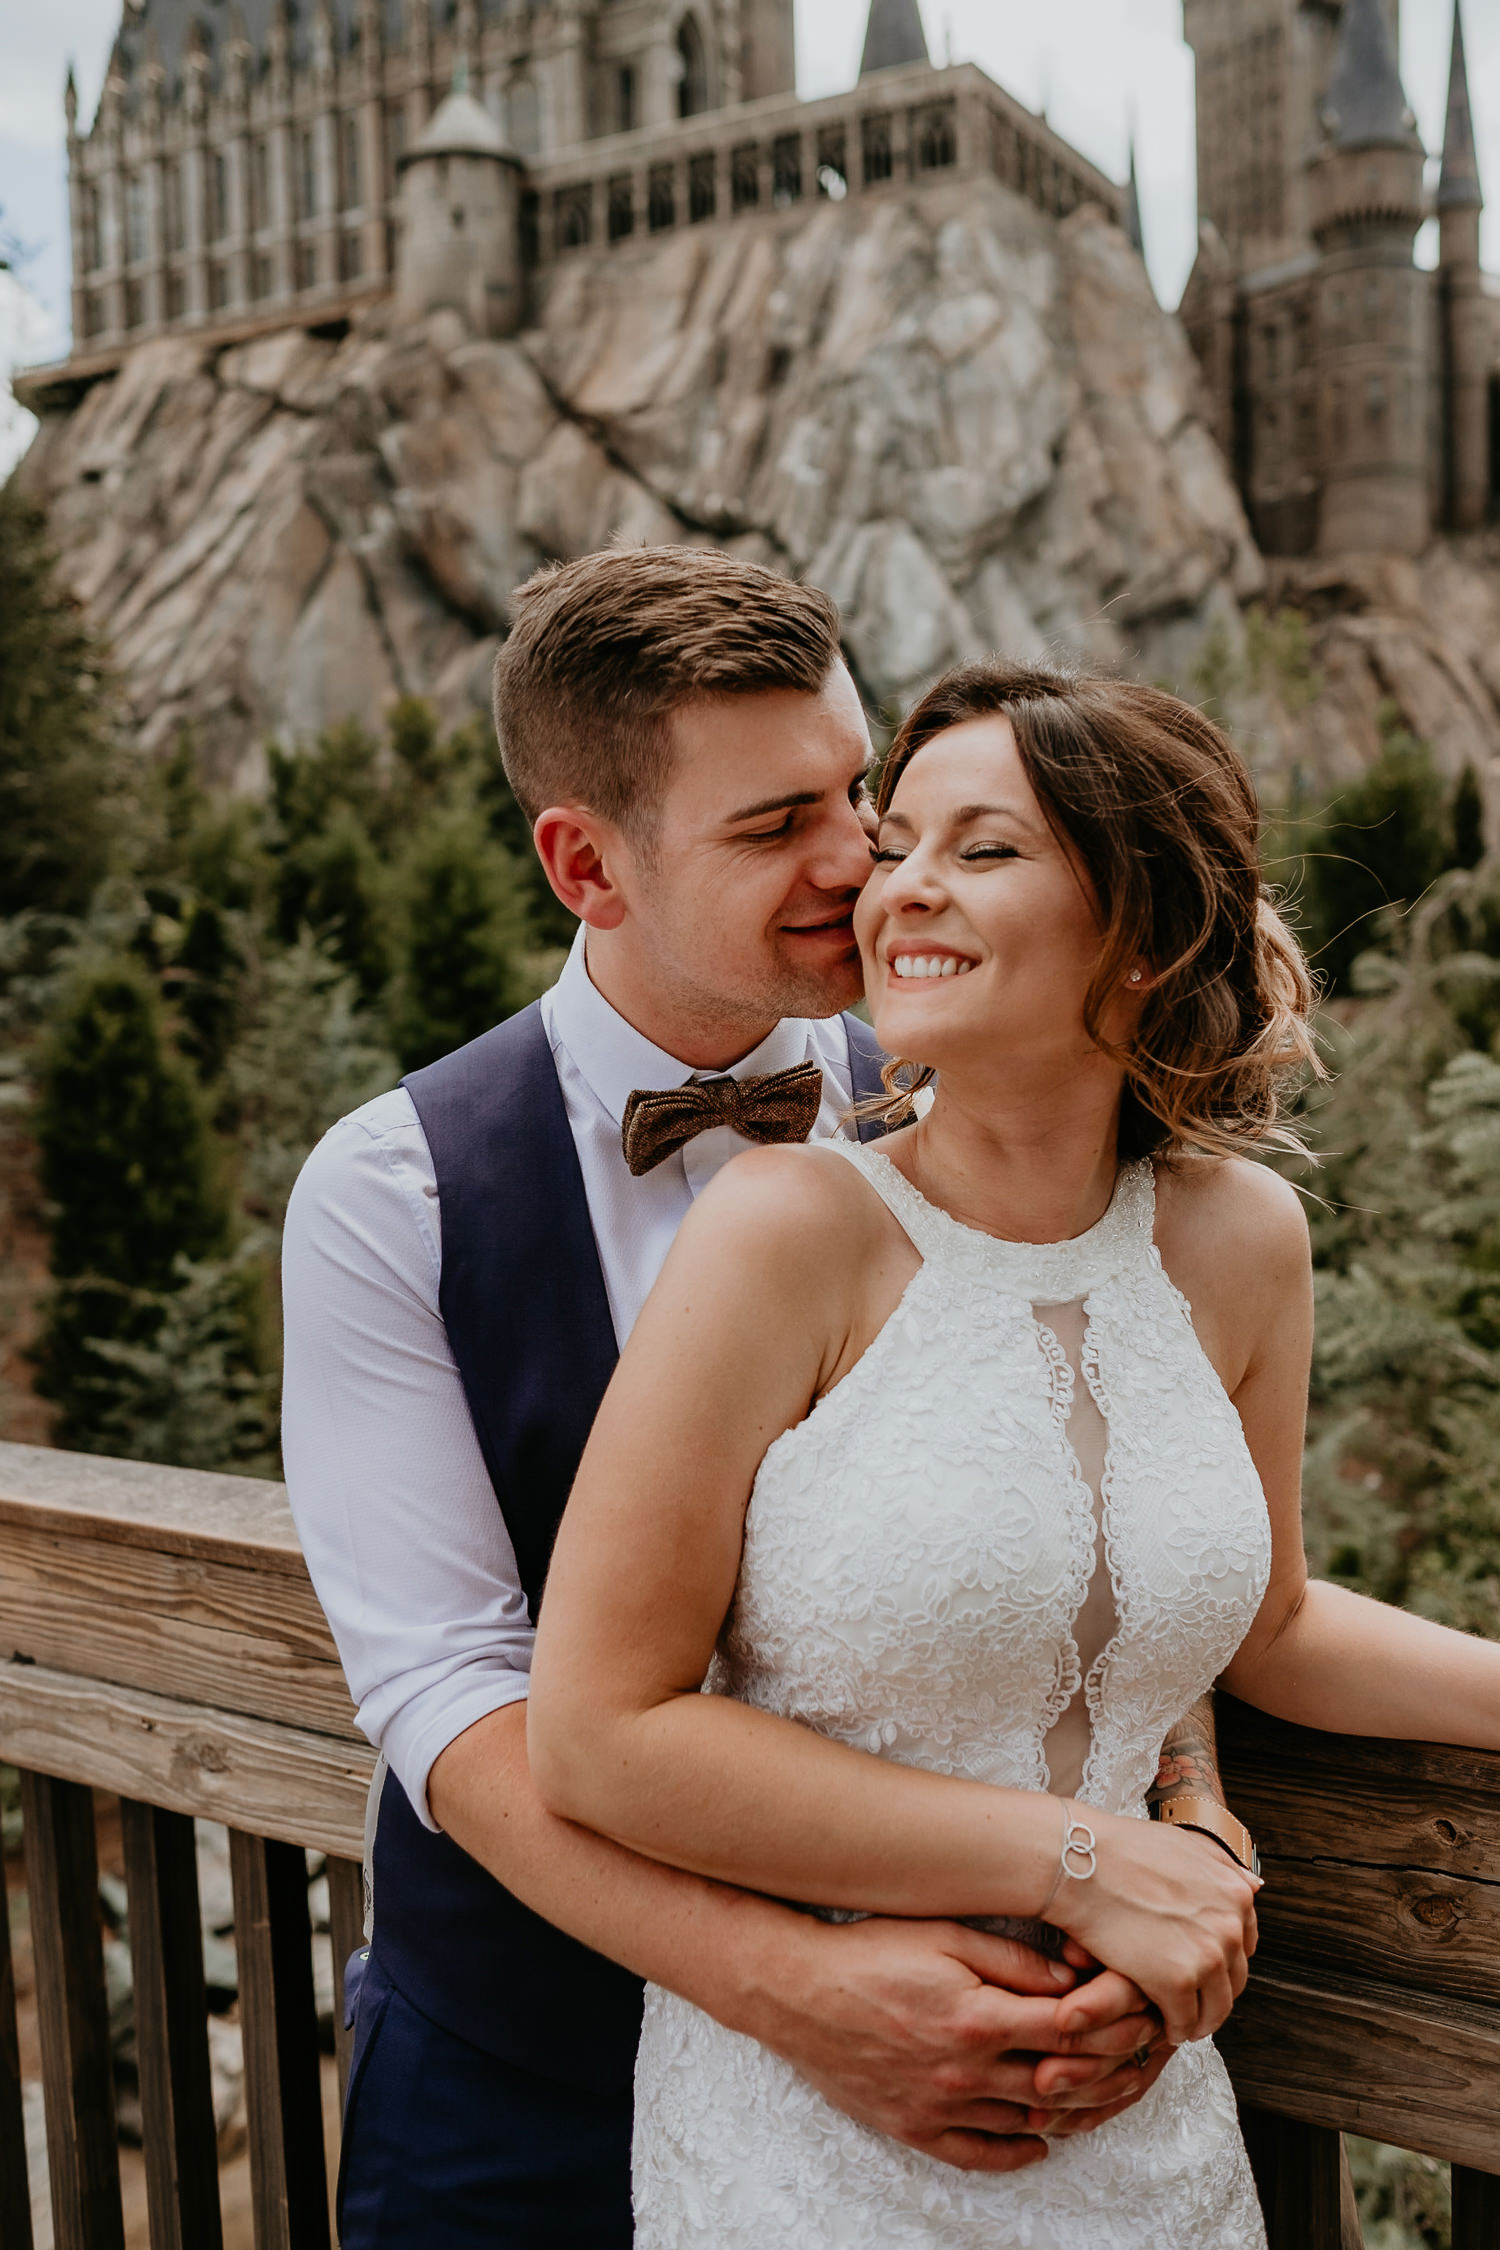 close up of groom behind bride kissing her cheek with hogwarts castle in background